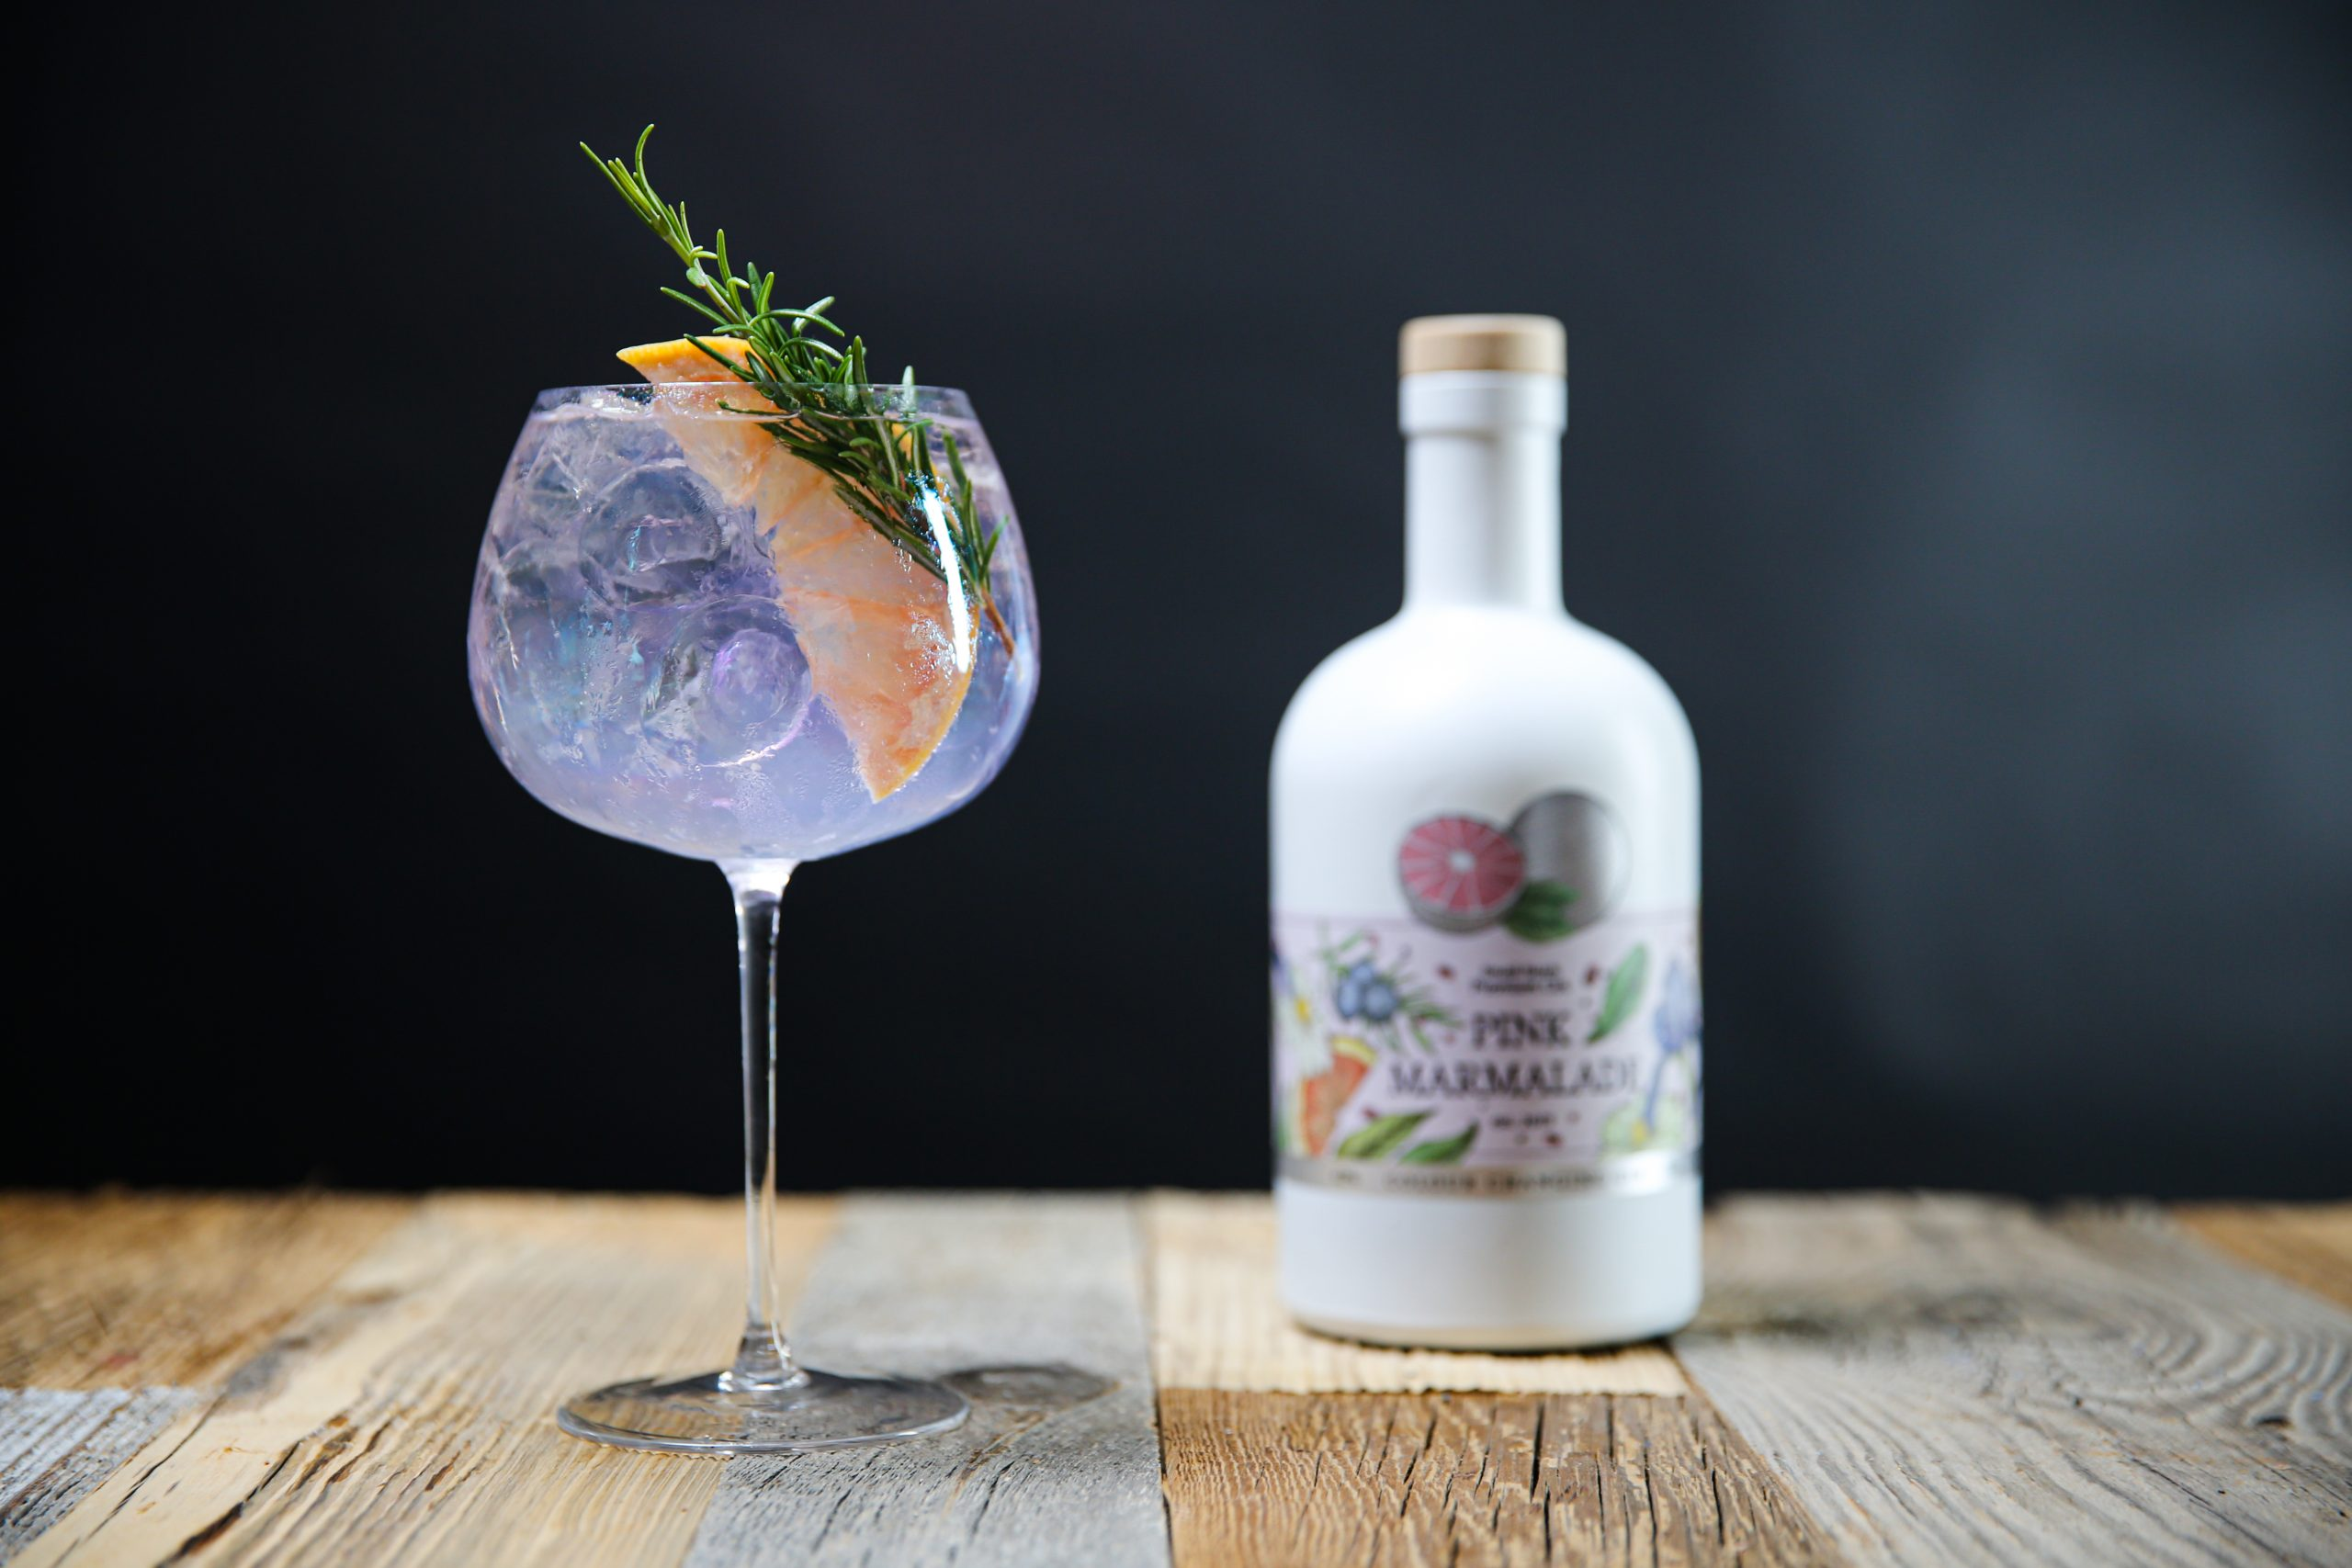 gin in balloon glass on table